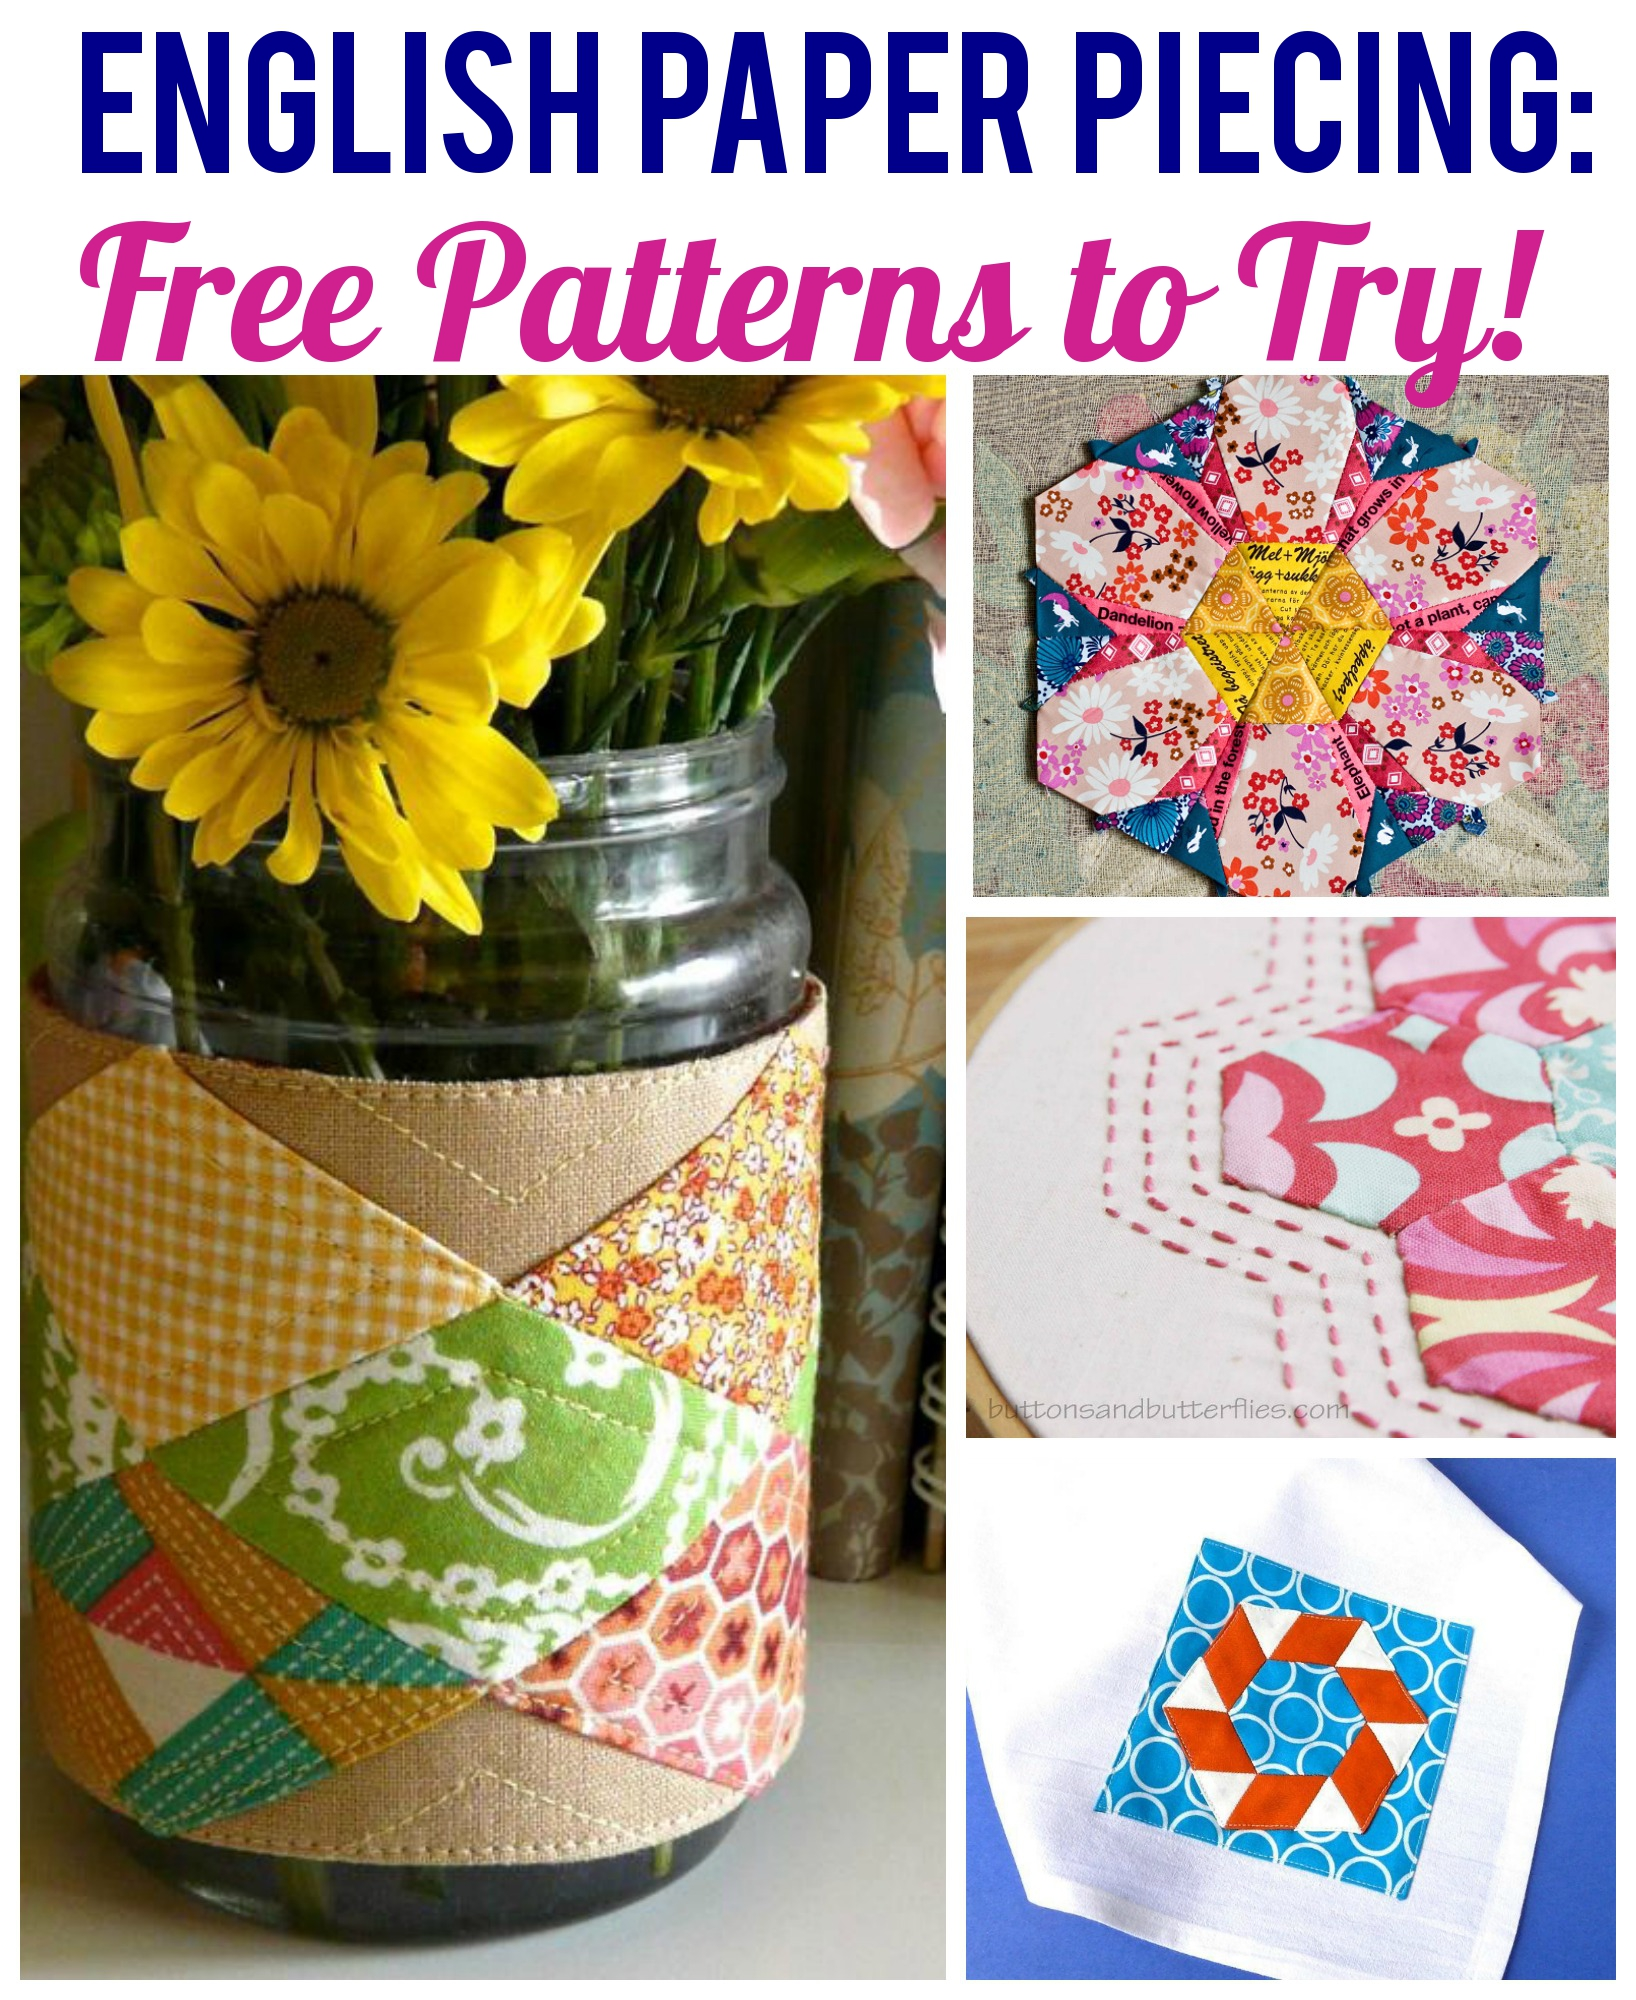 Free English Paper Piecing Patterns to Try